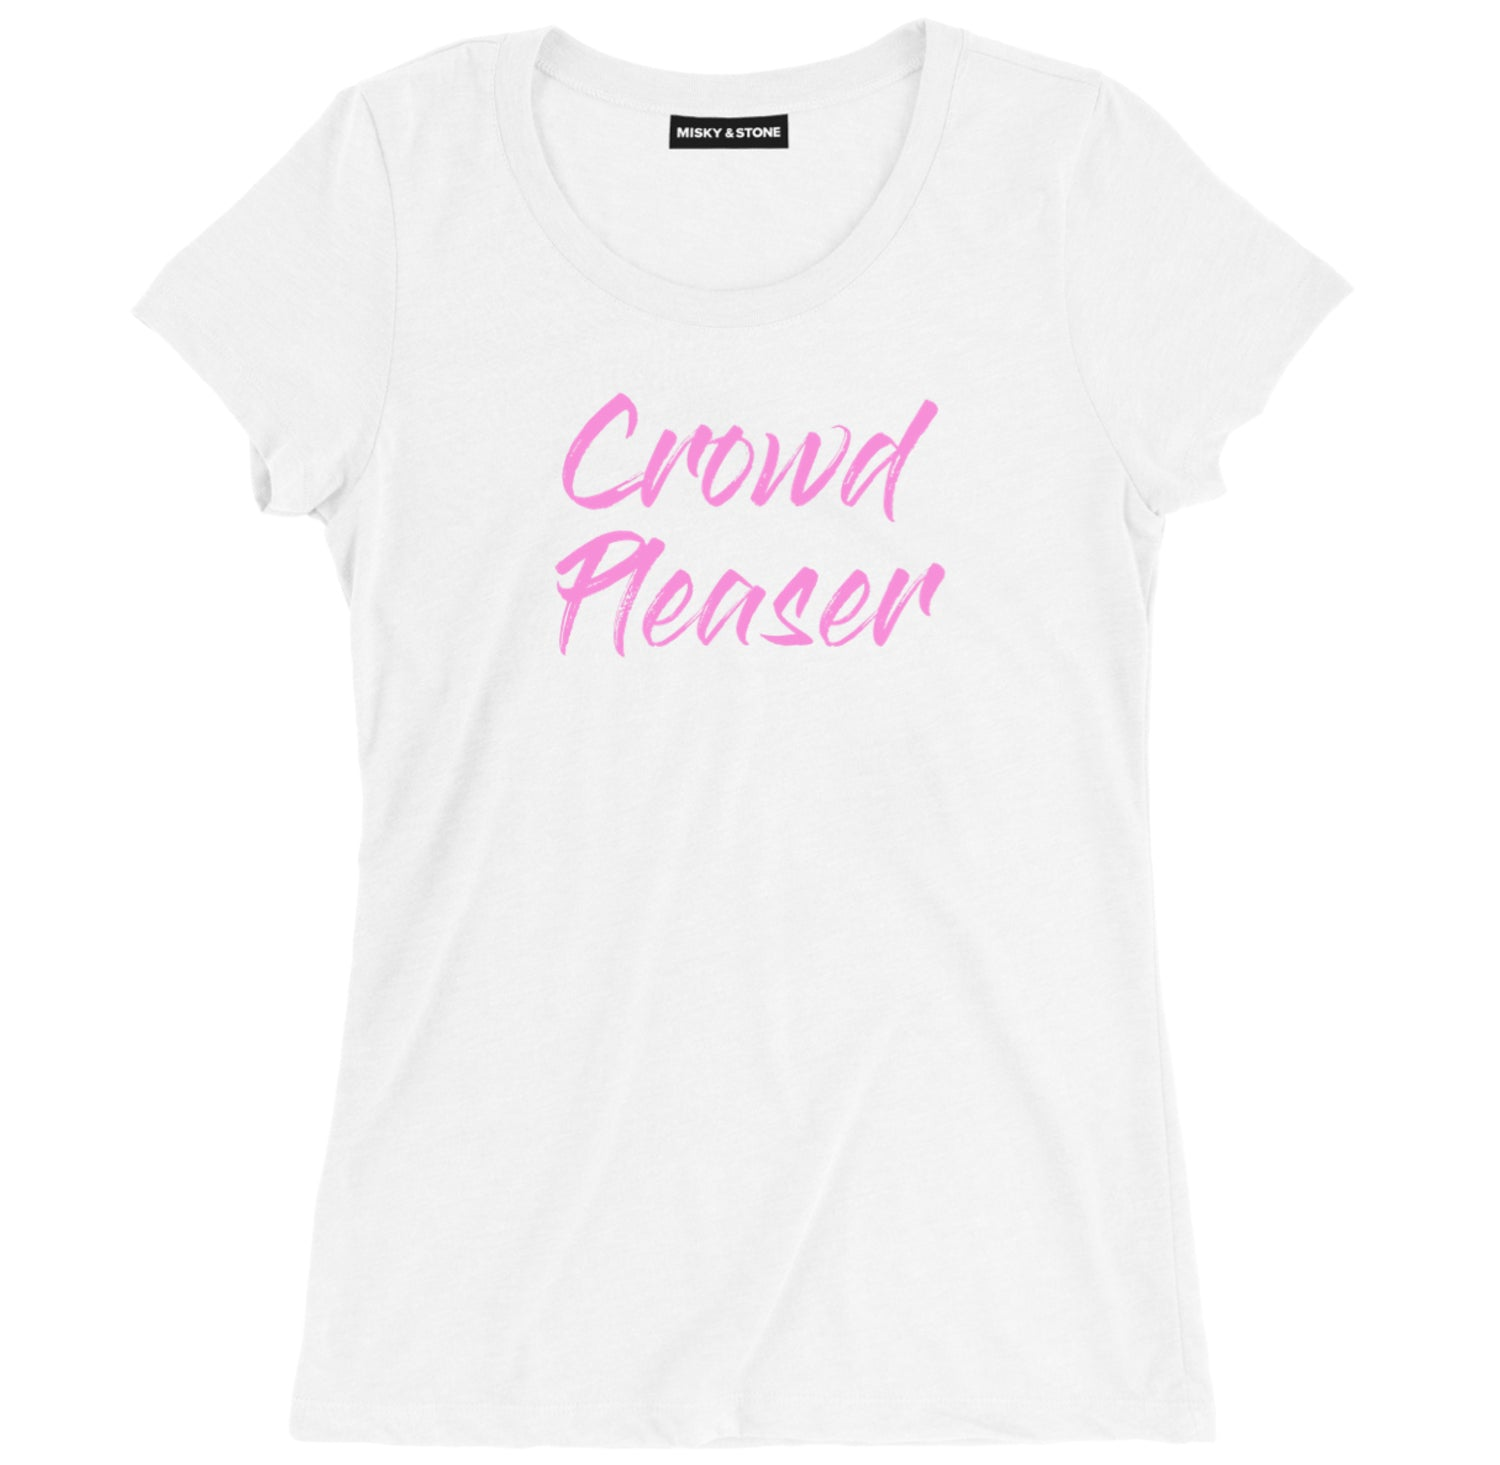 crowd please sassy tee shirts, crowd pleaser sassy clothing, crowd pleaser sassy merch, sassy apparel, crowd pleaser funny sassy tees, sassy af shirt